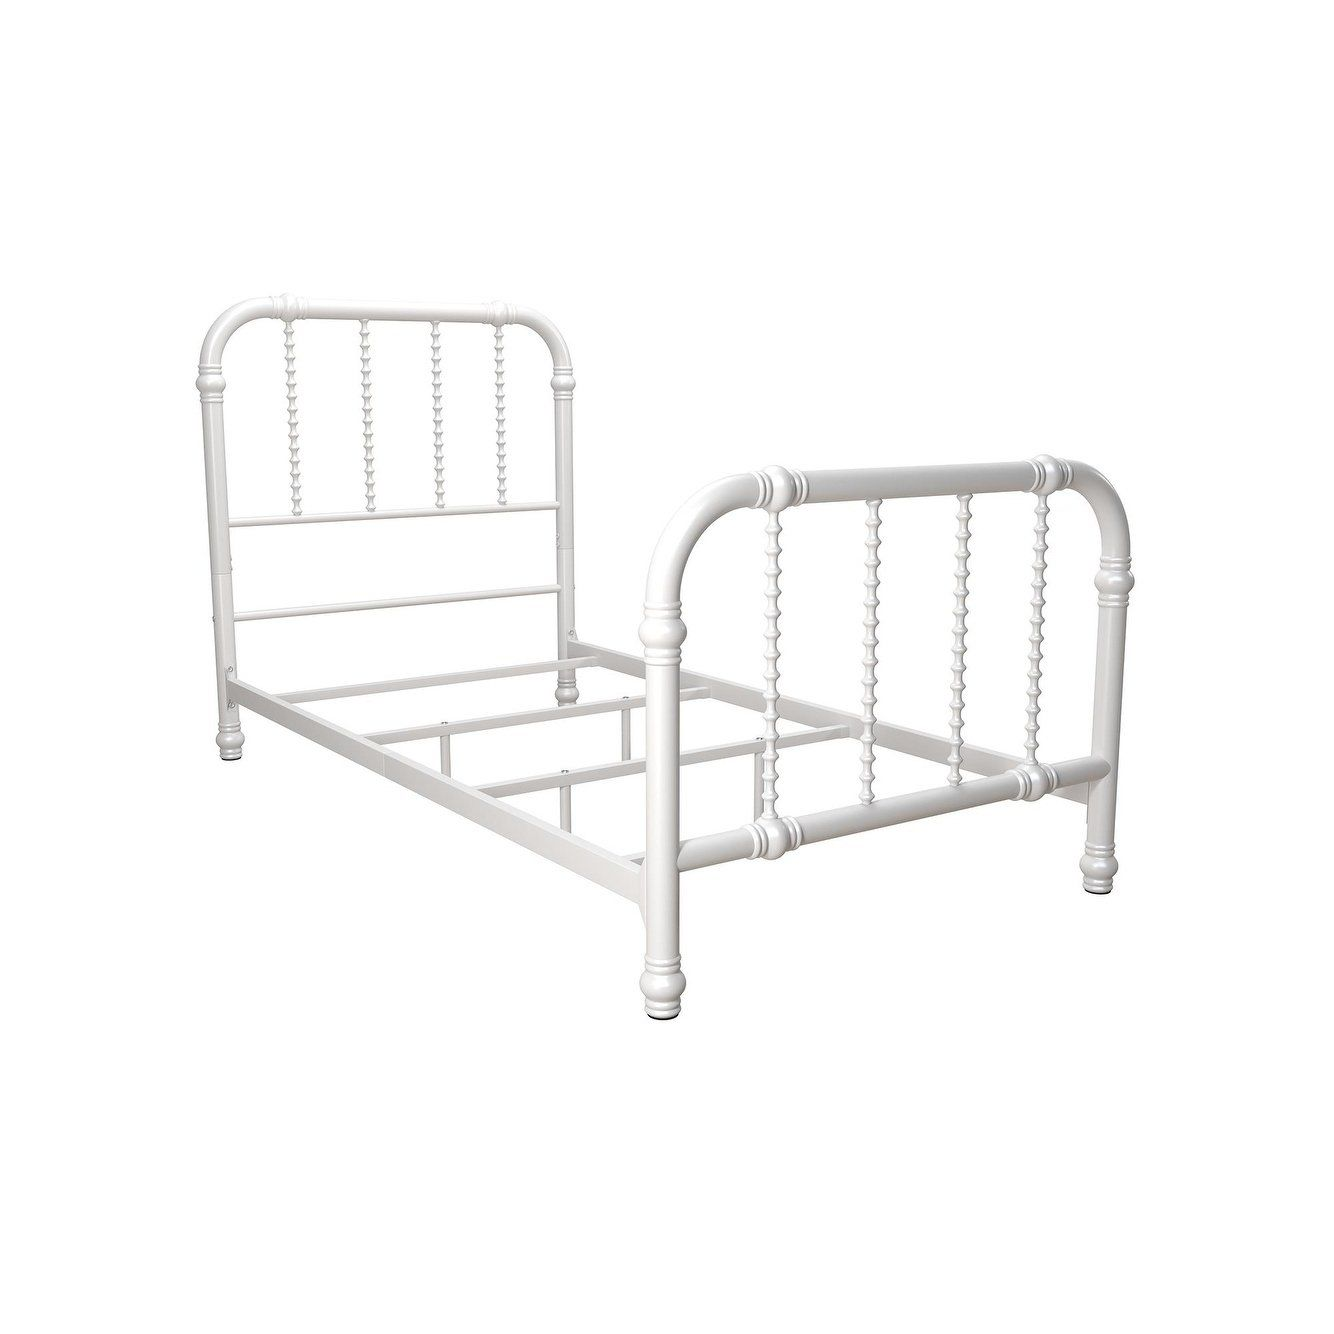 Dhp Jenny Lind Metal Twin Bed White Twin White Metal Bed